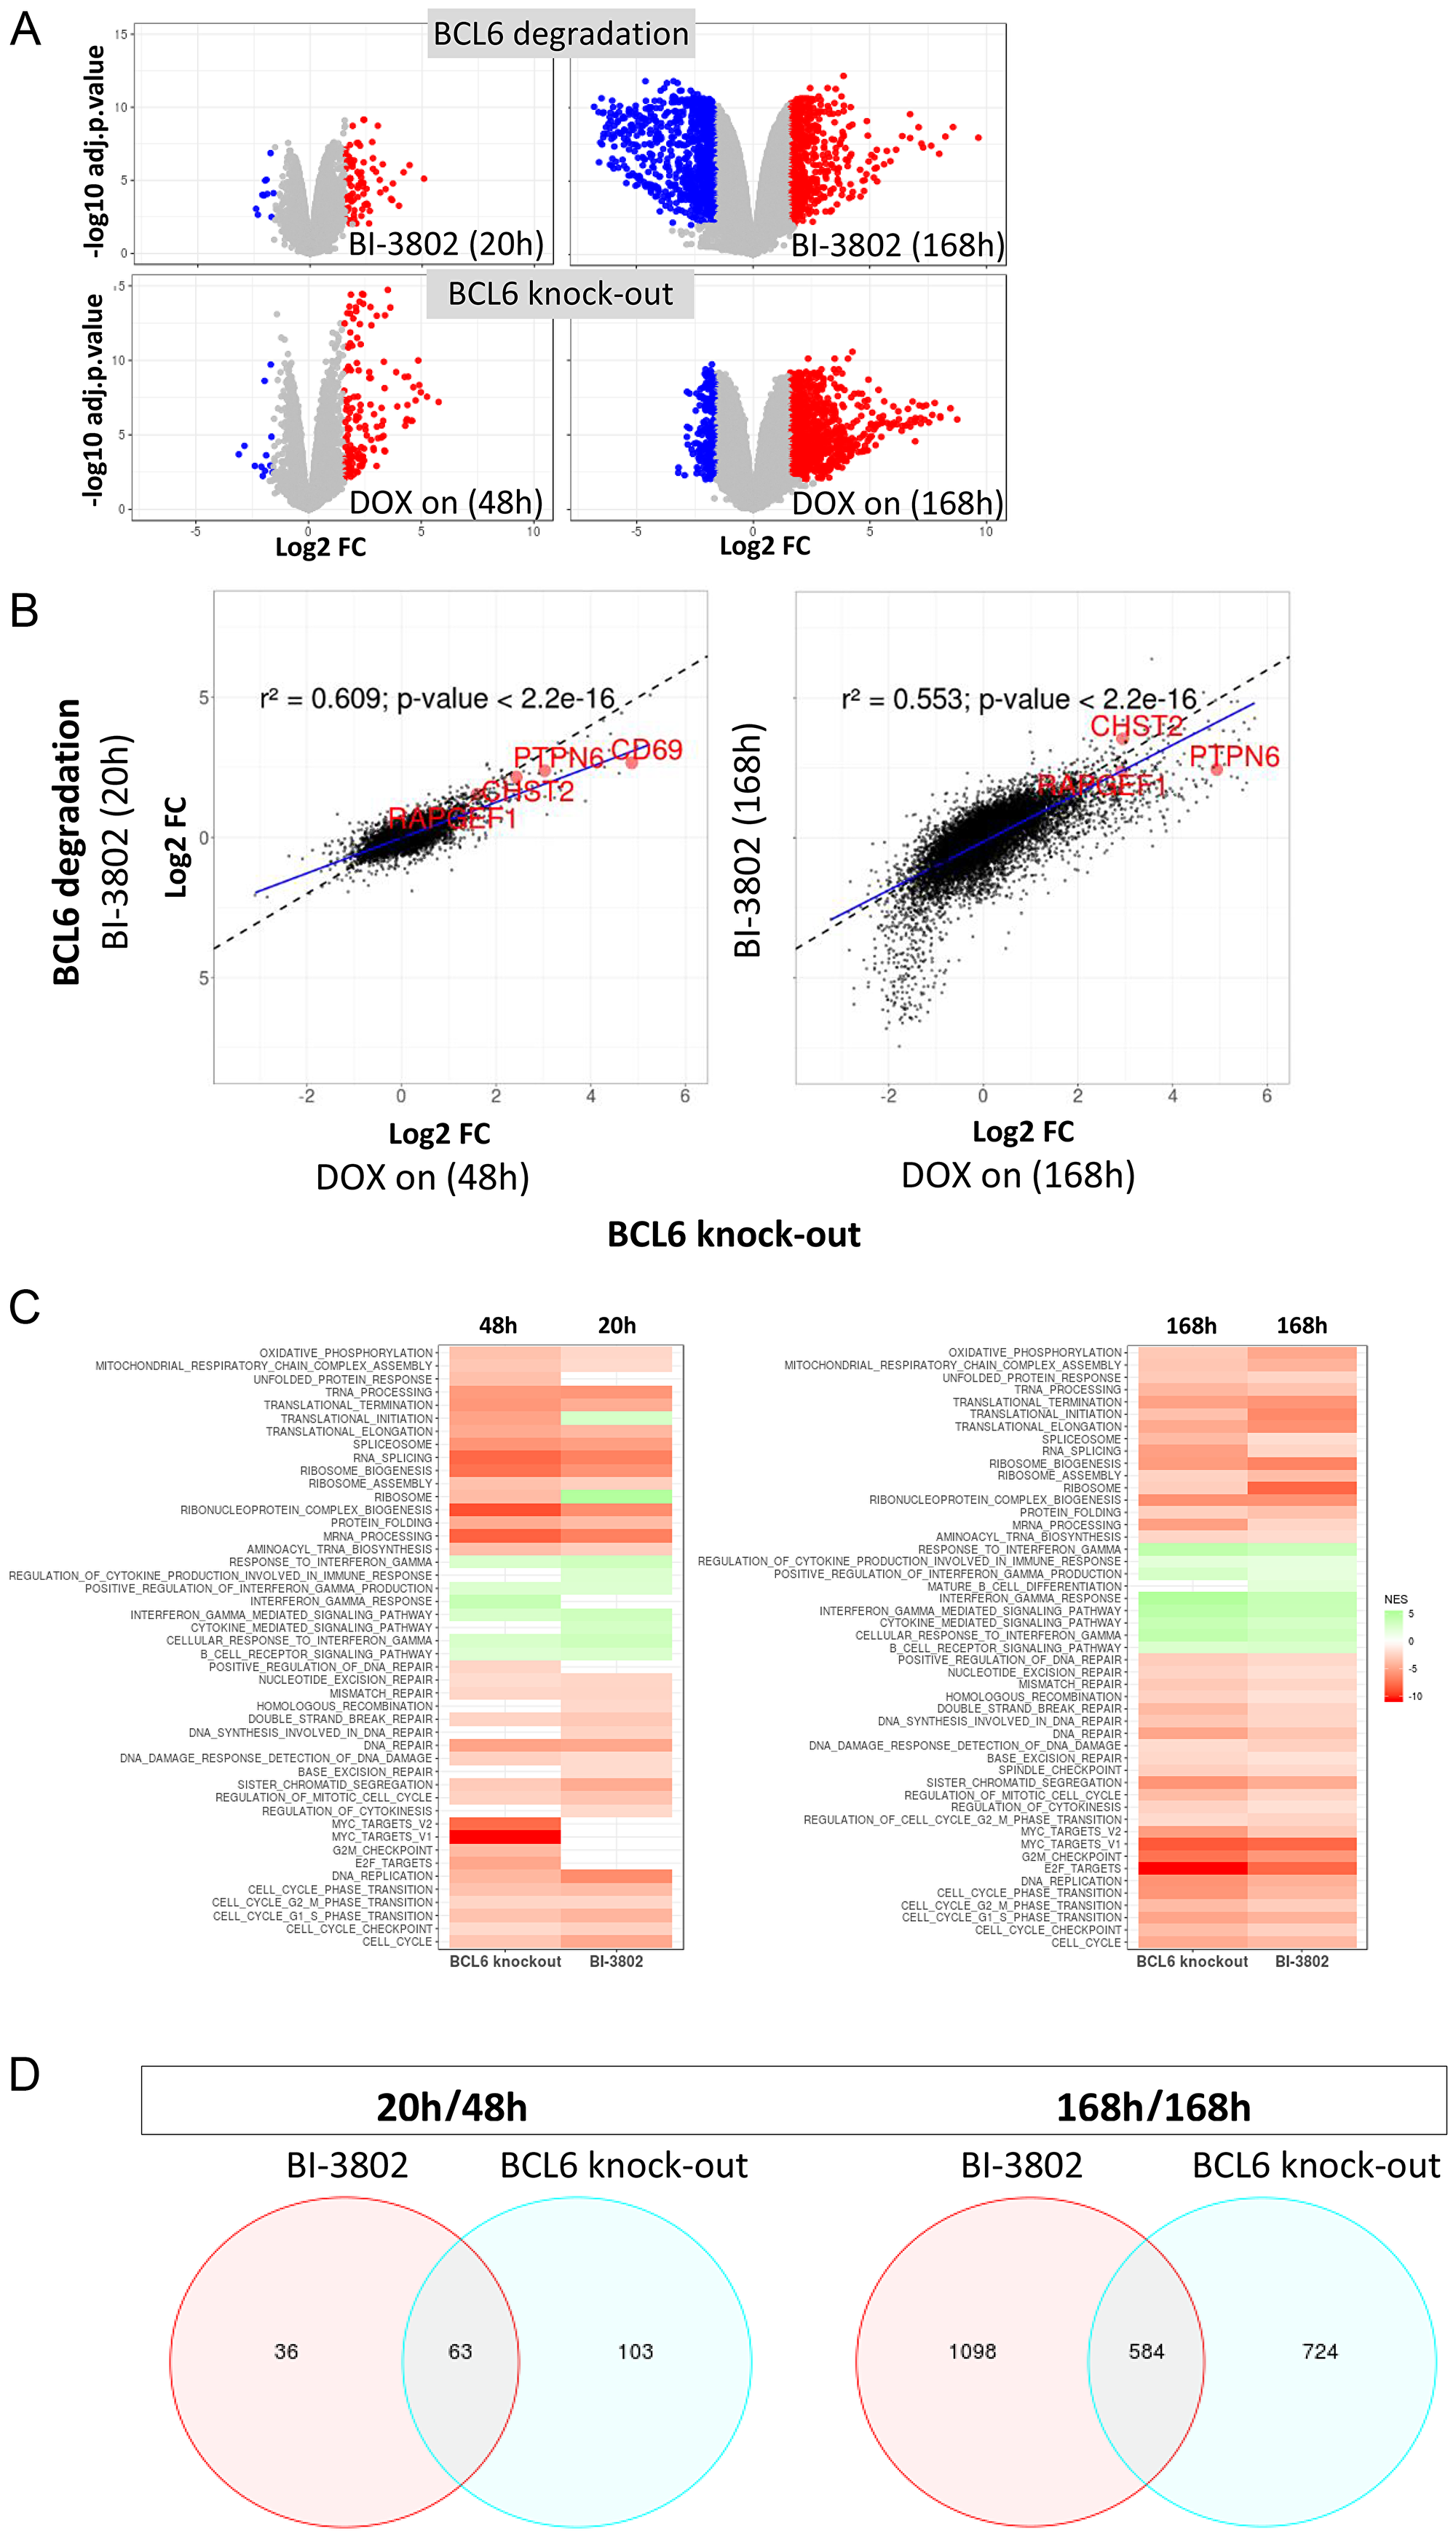 Conditional BCL6 knock-out in SU-DHL-4 induces gene perturbations similar to BCL6 degradation.